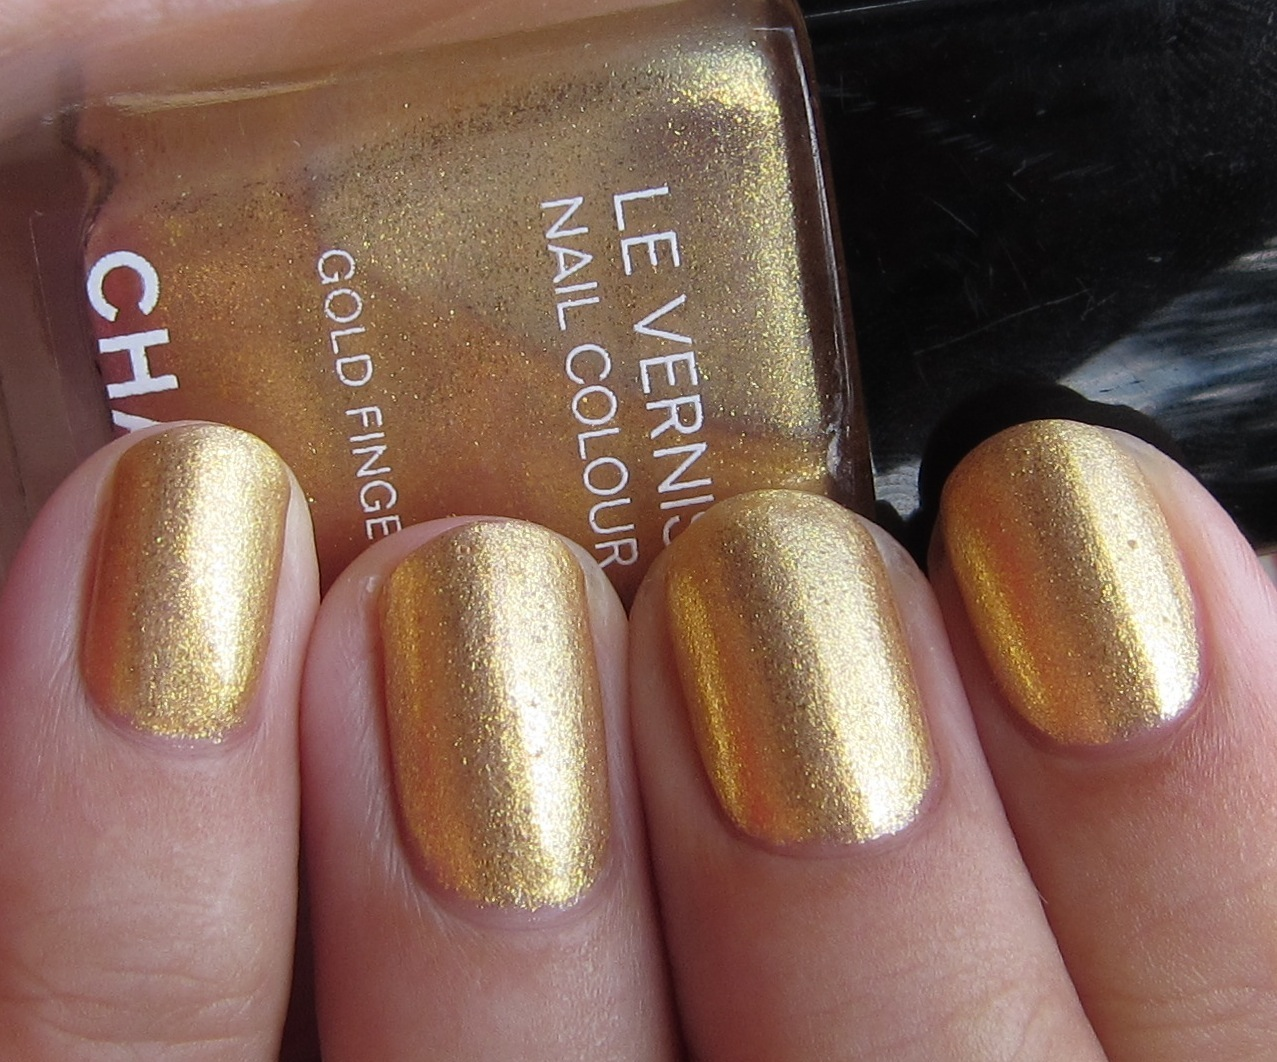 chanel in gold fingers + comparisons